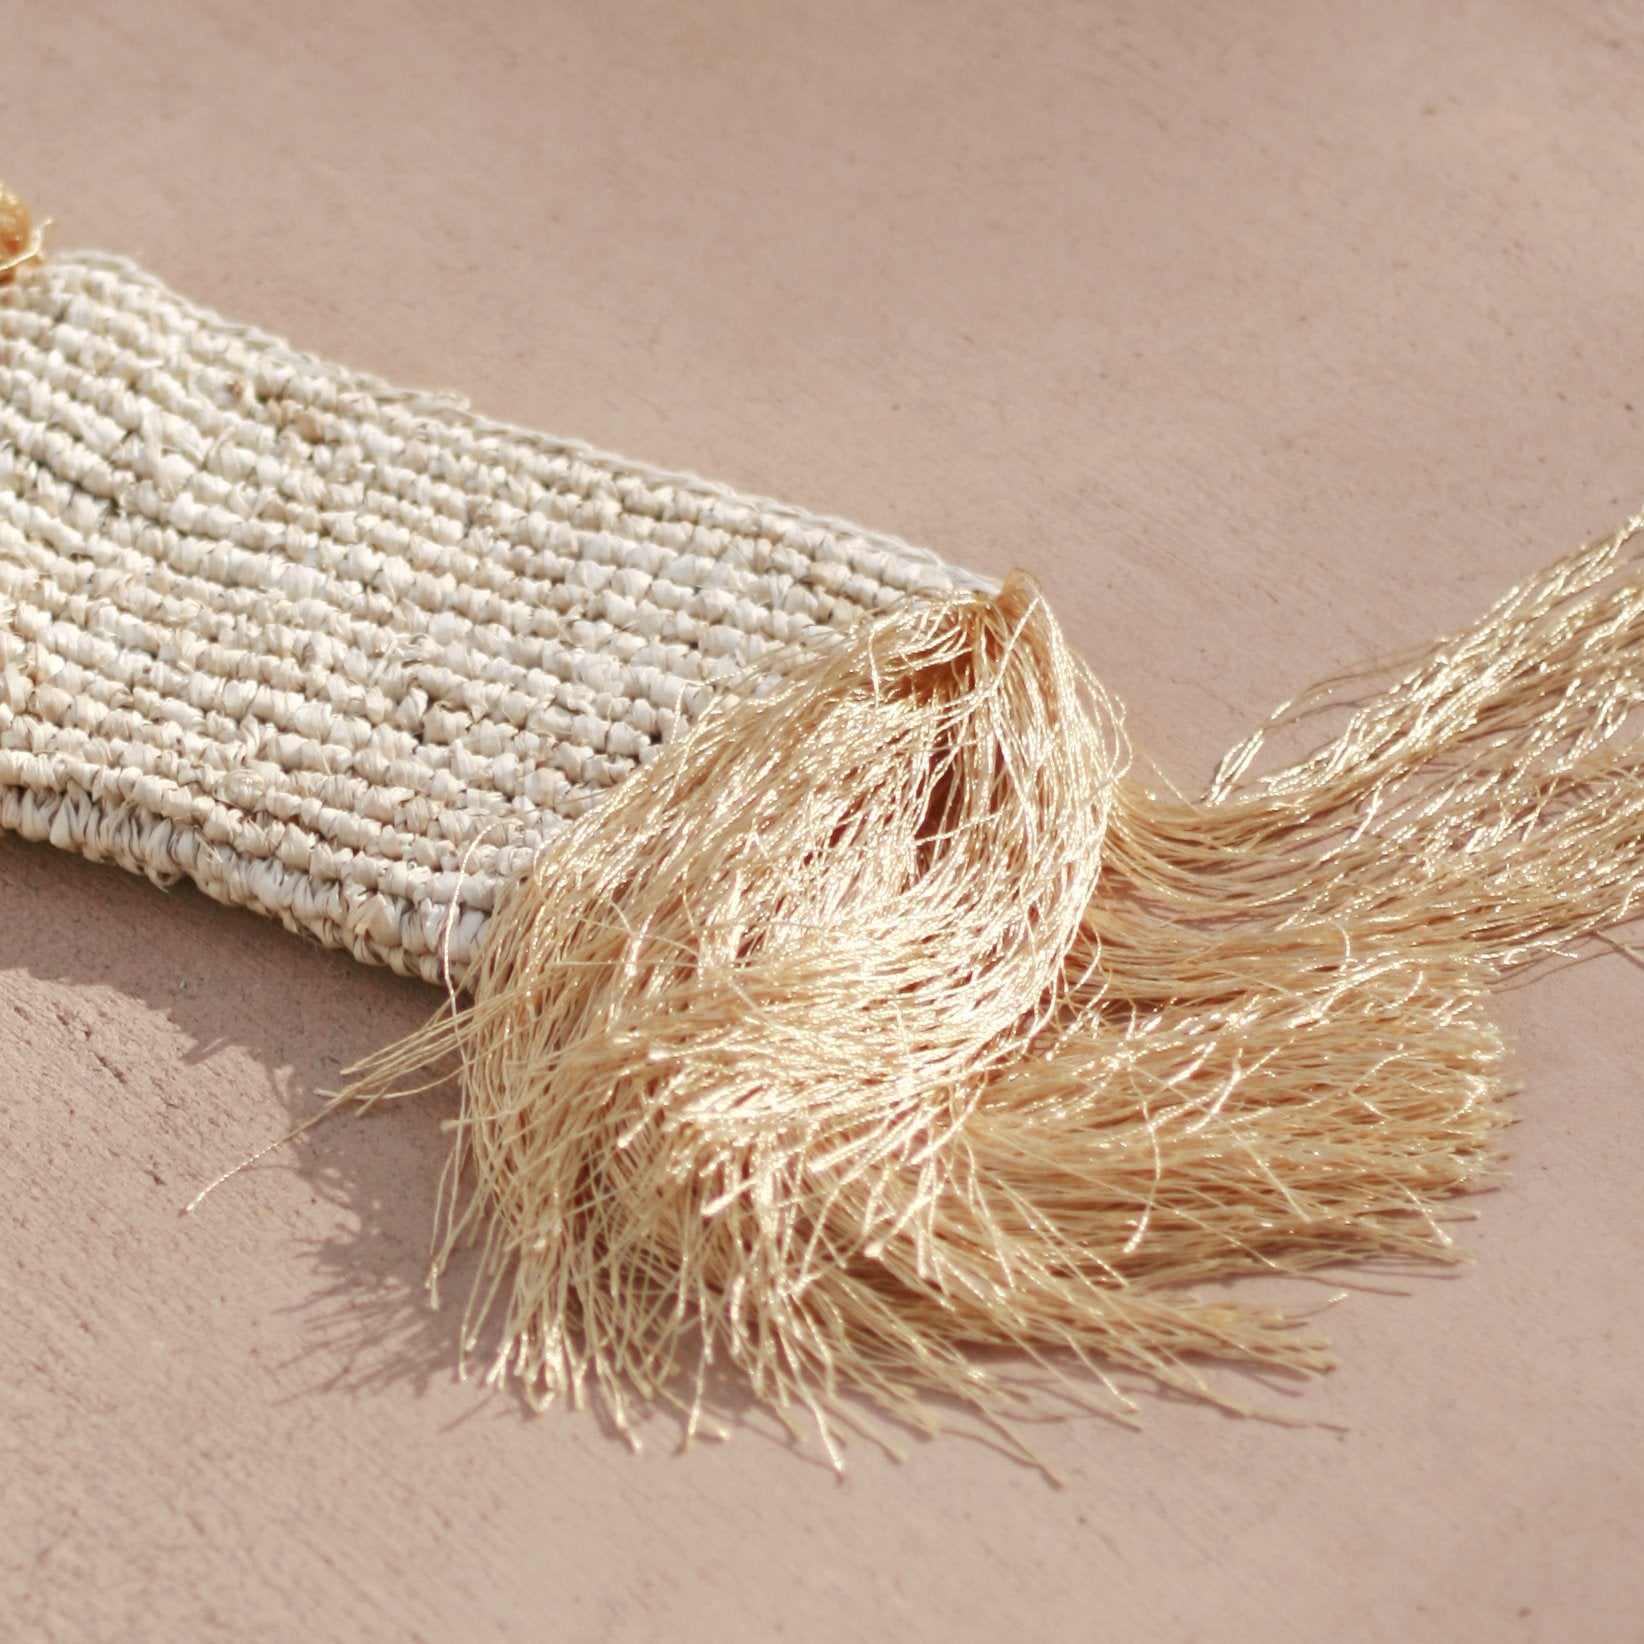 Canggu Fringe Raffia Straw Clutch, in Gold